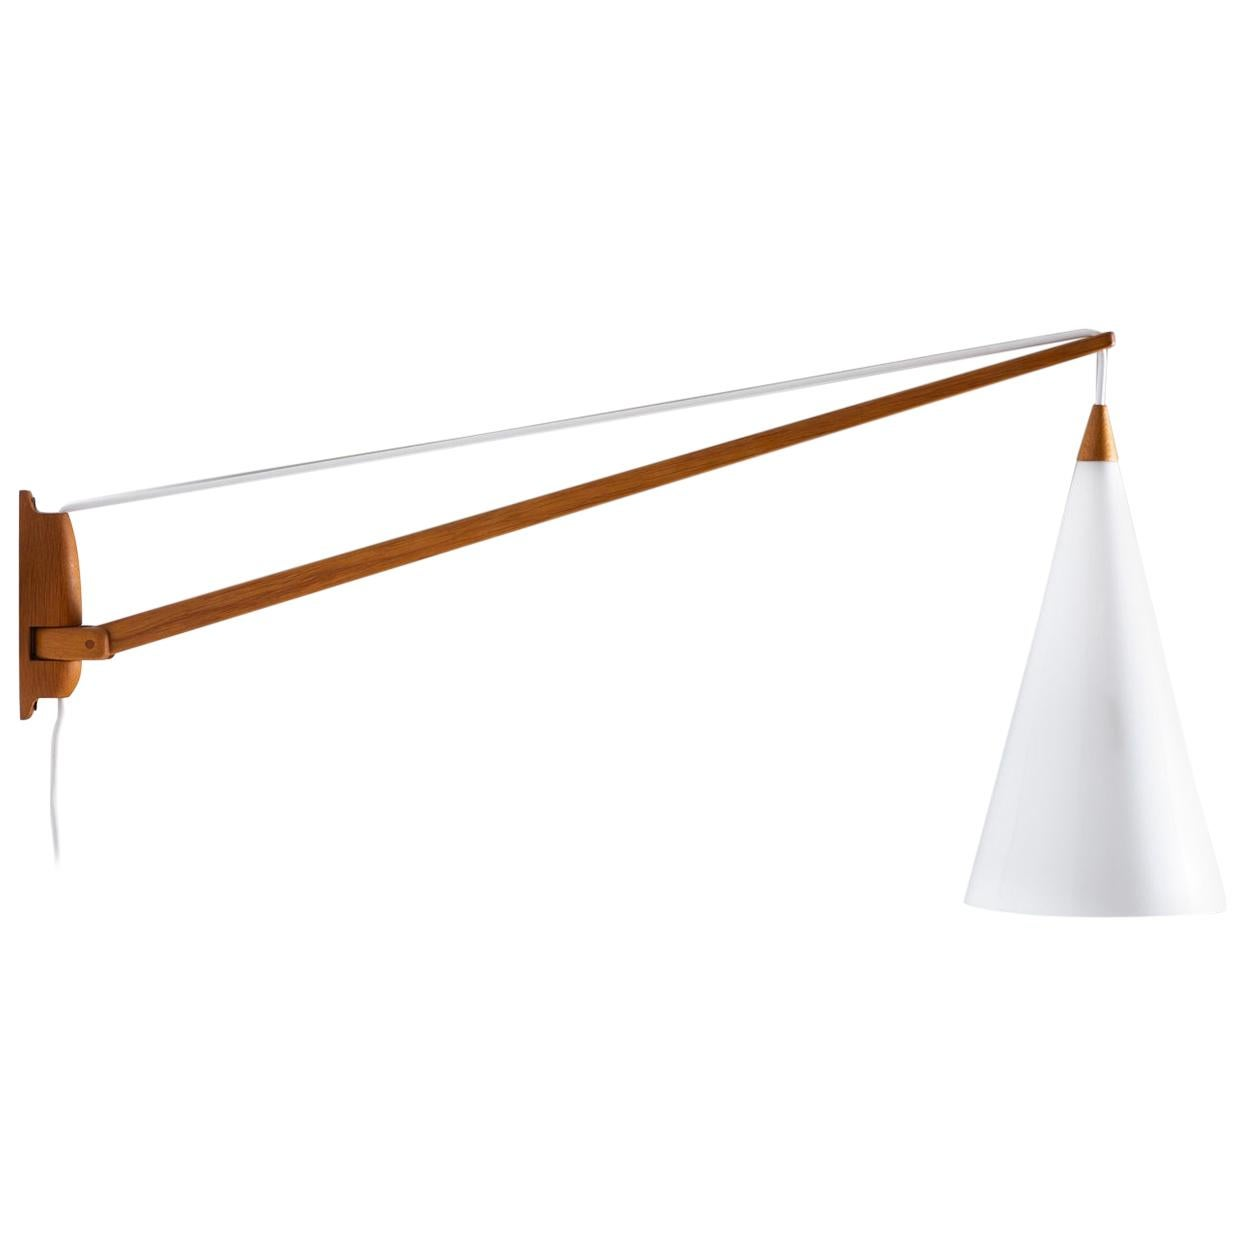 Swedish Midcentury Swiveling Wall Lamp in Acrylic and Teak by Luxus